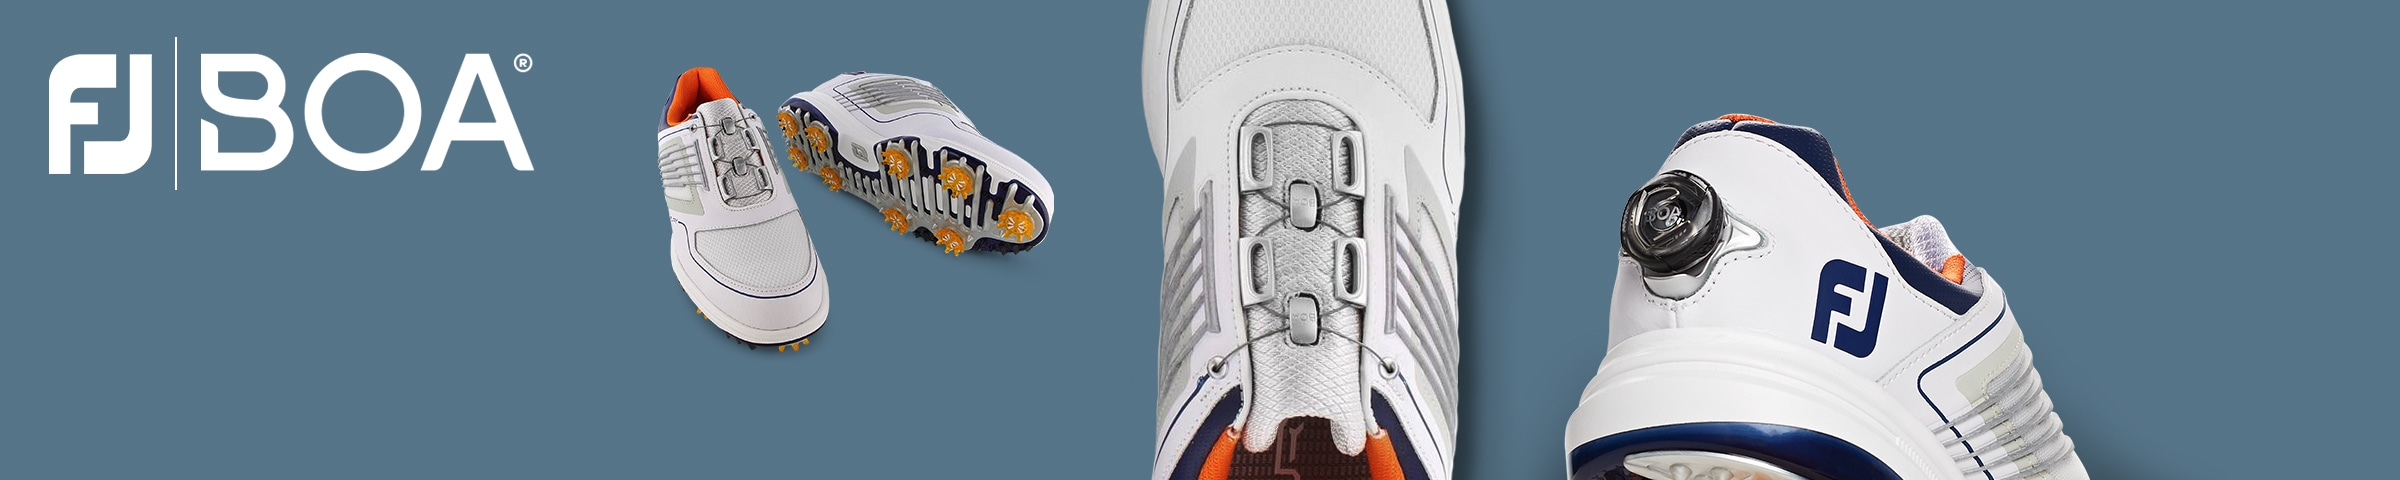 FootJoy Boa Fit System Golf Shoes